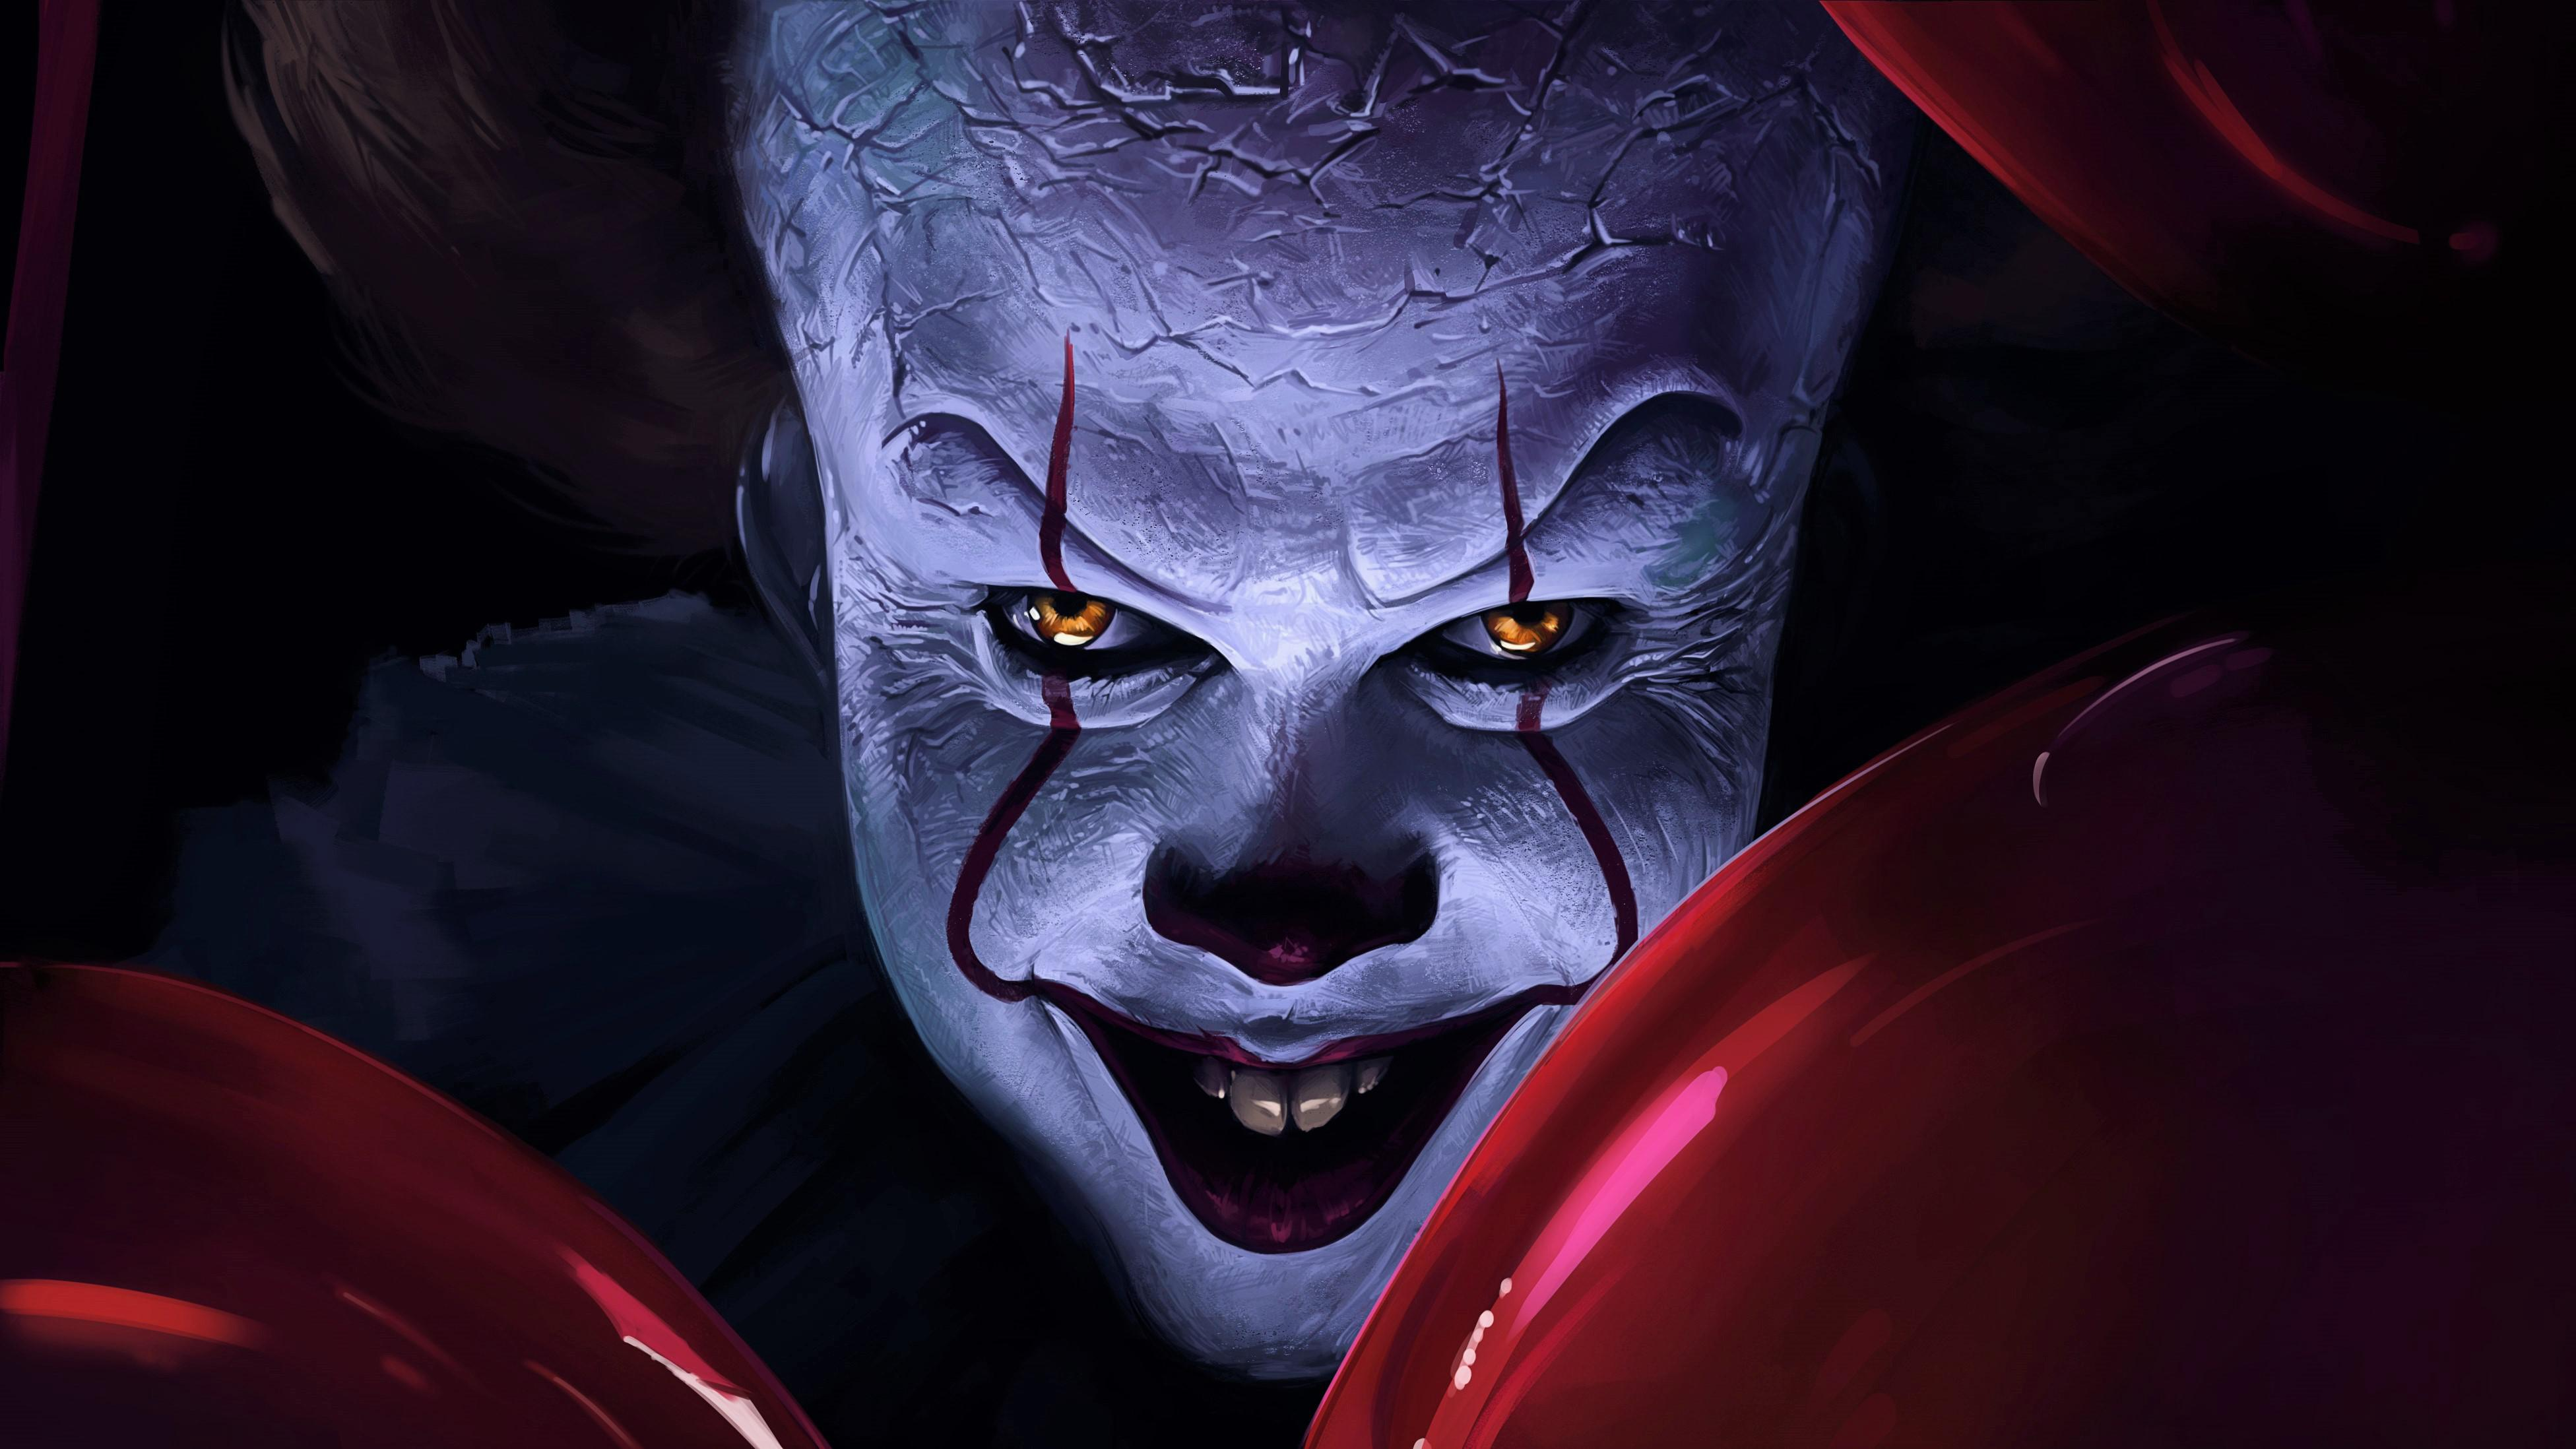 Pennywisewallpaper  Horror Free Wallpaper Backgrounds